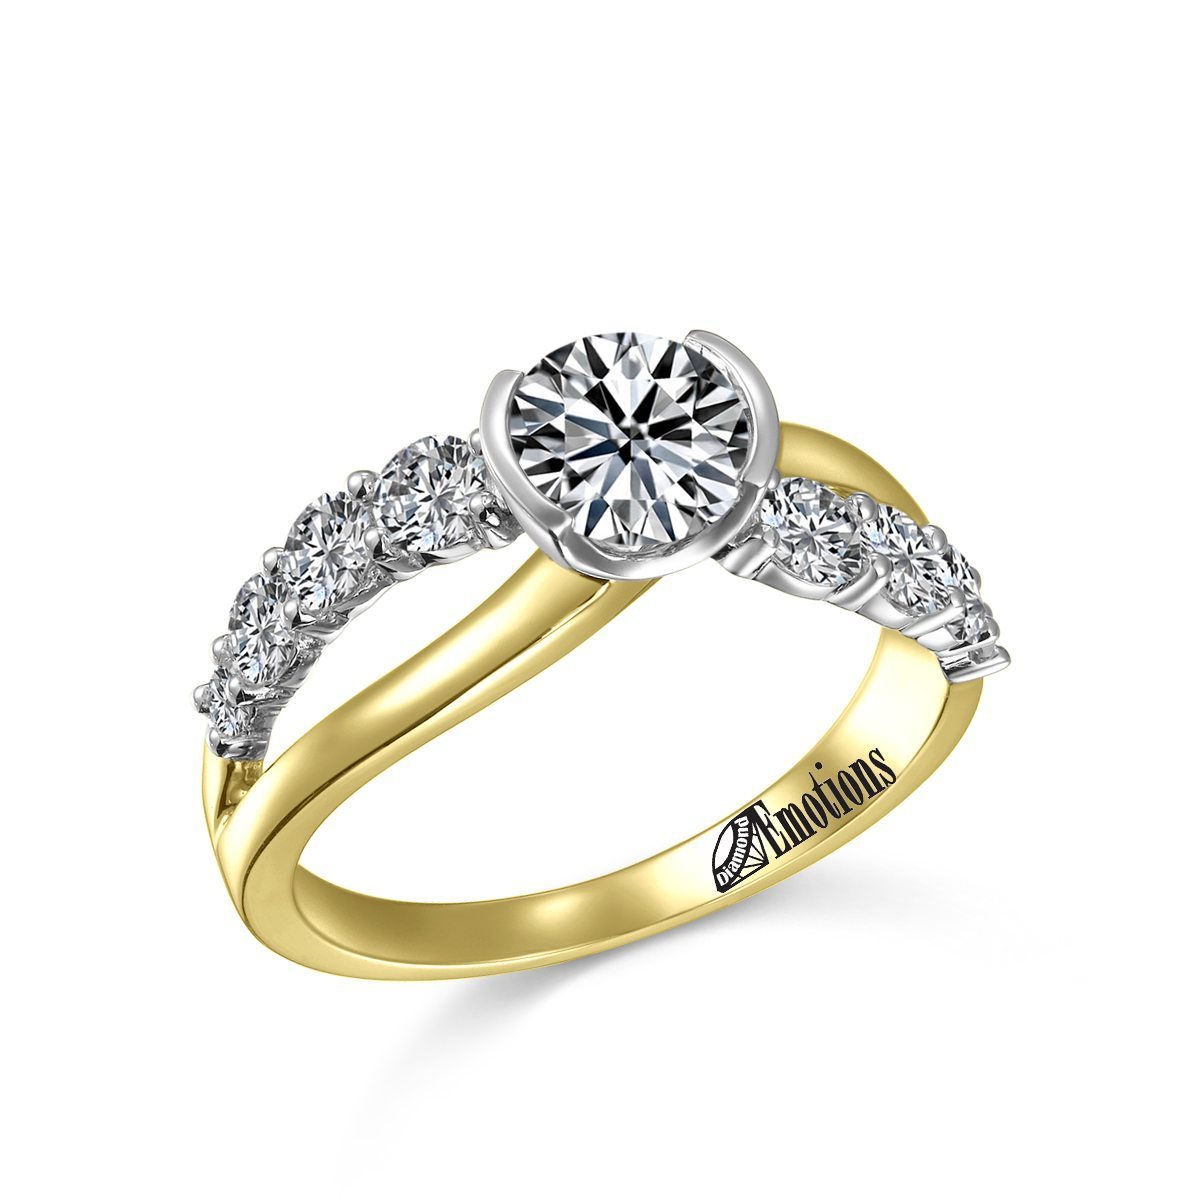 Stuller Engagement Collection Gallery: Diamond Collection